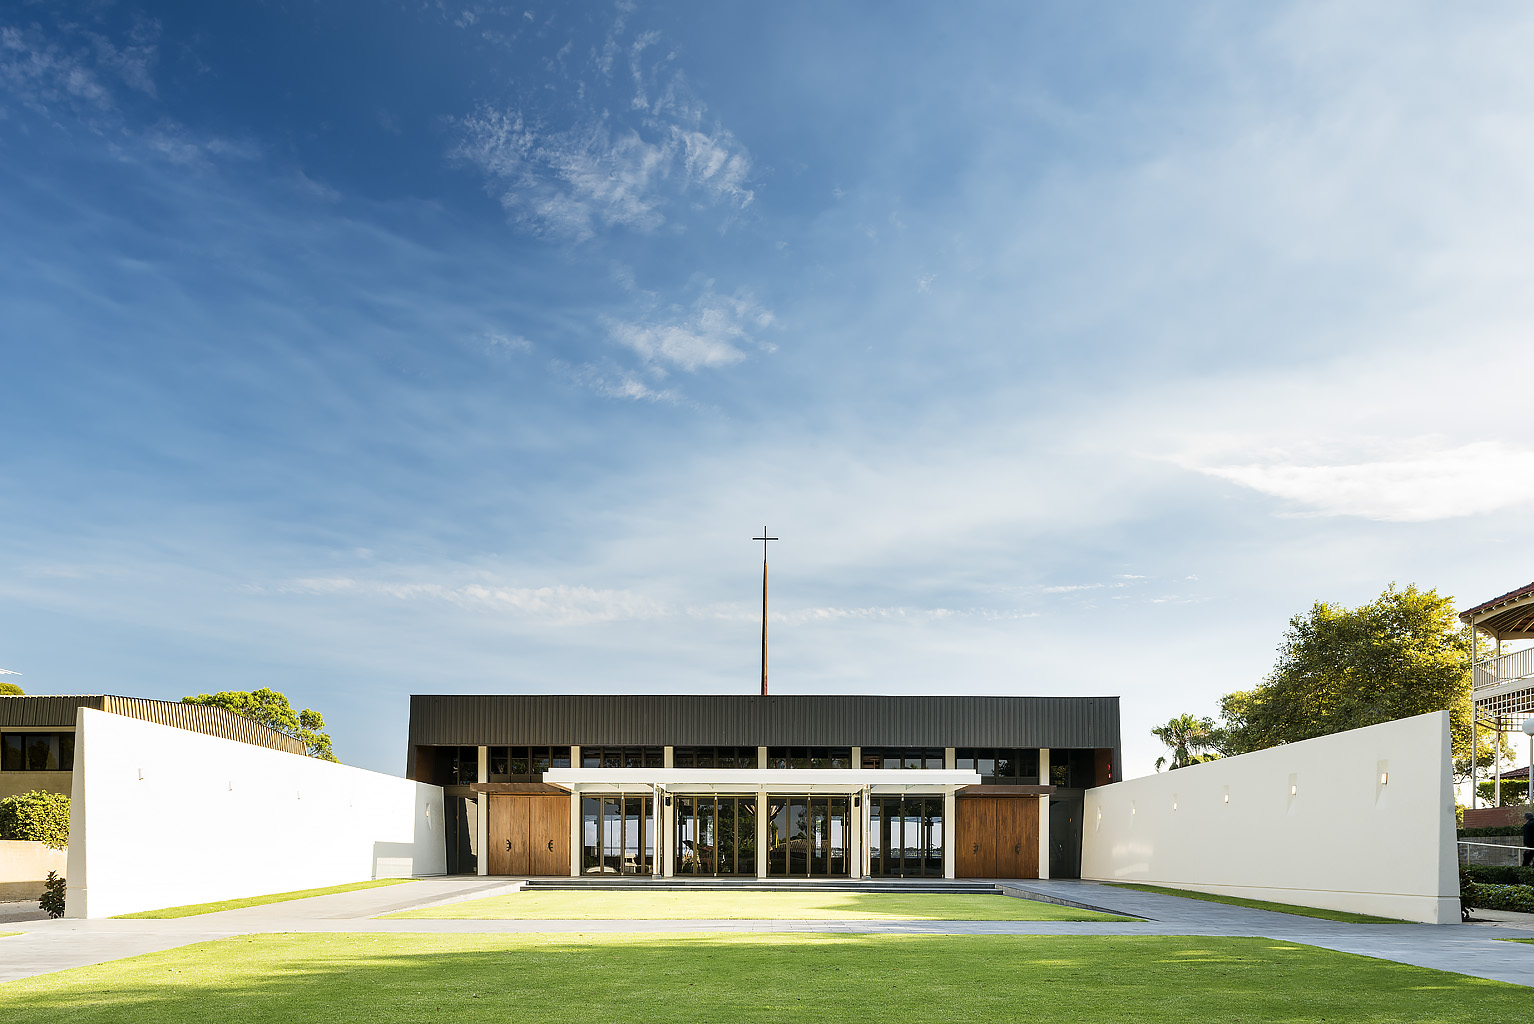 Christ-Church-Grammar-School-Chapel-Perth-Architecture-2